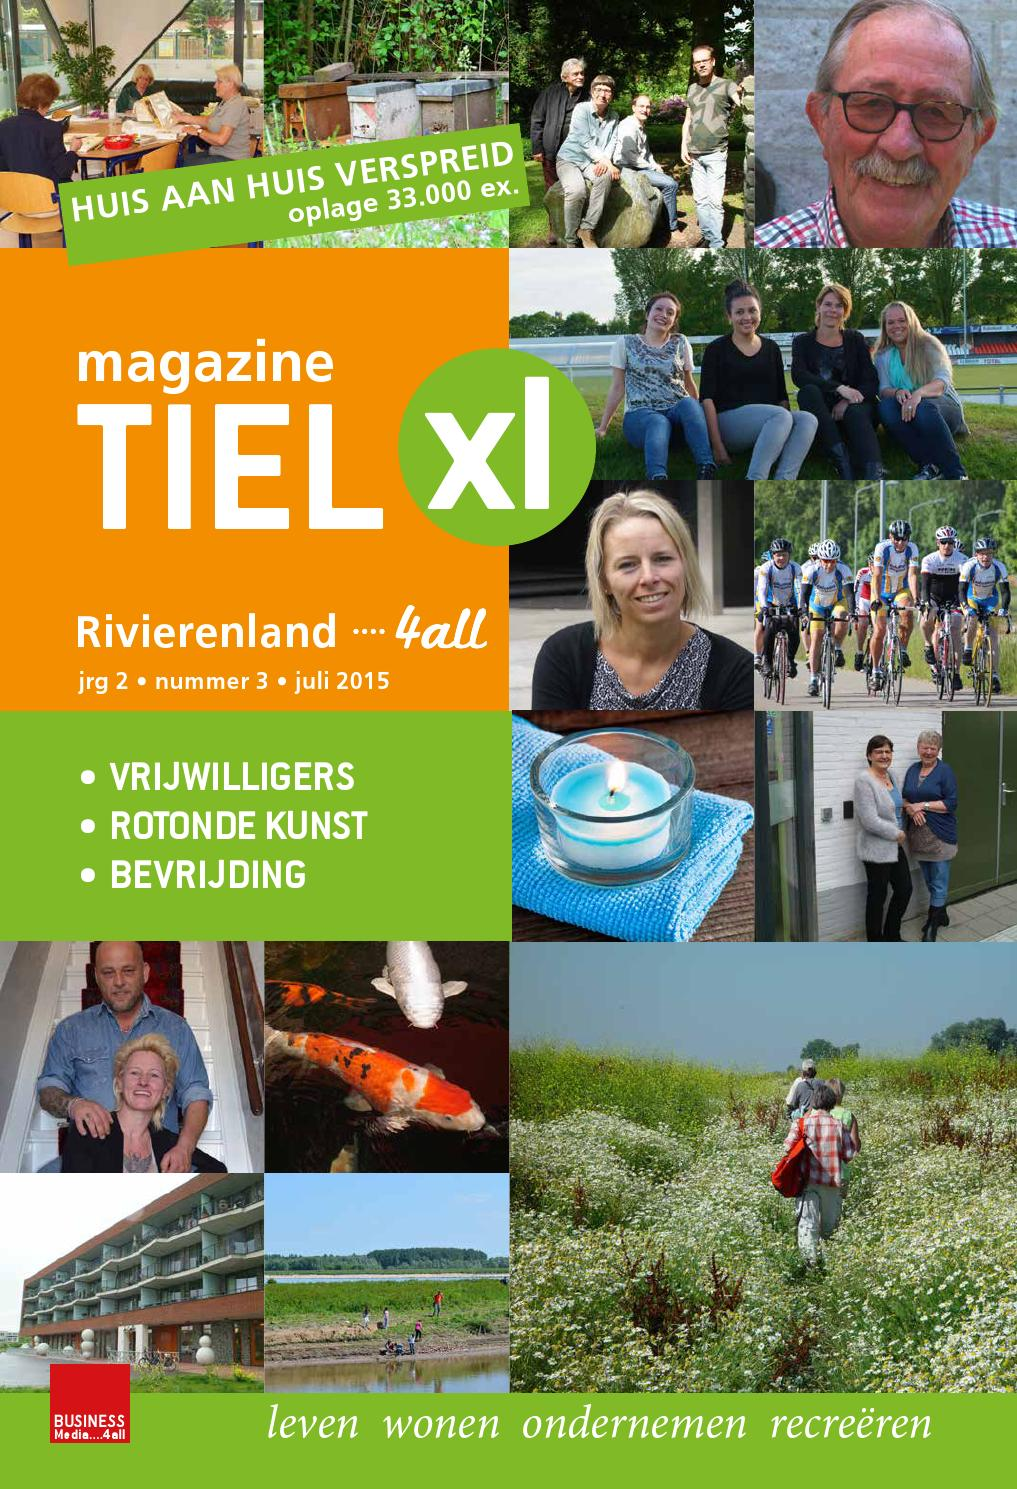 Ede totaal september 2016 online by peters communicatie   issuu